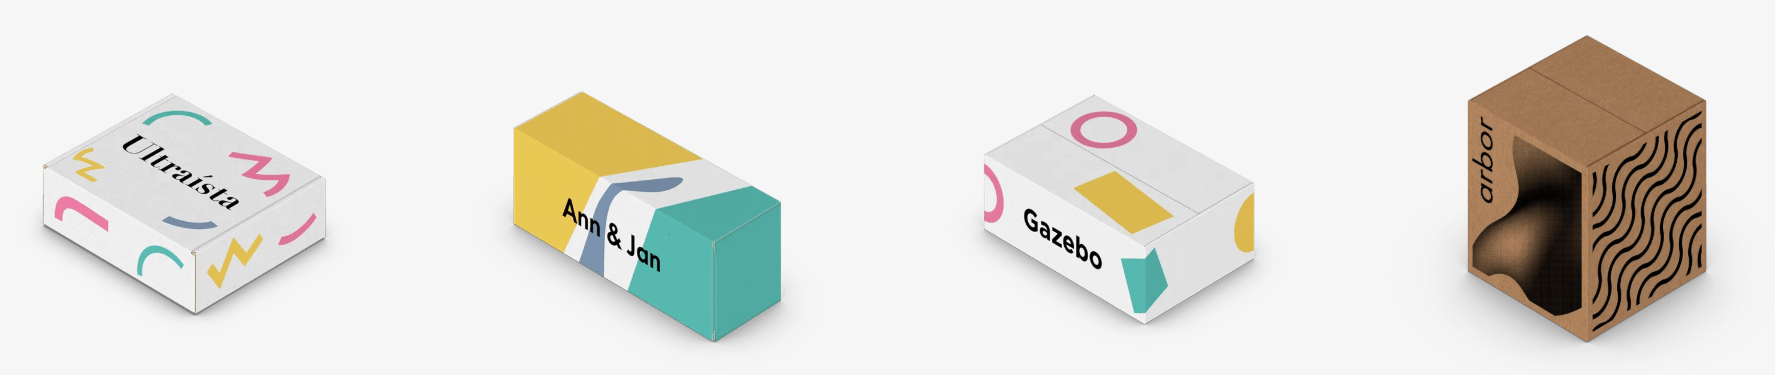 different packaging design styles